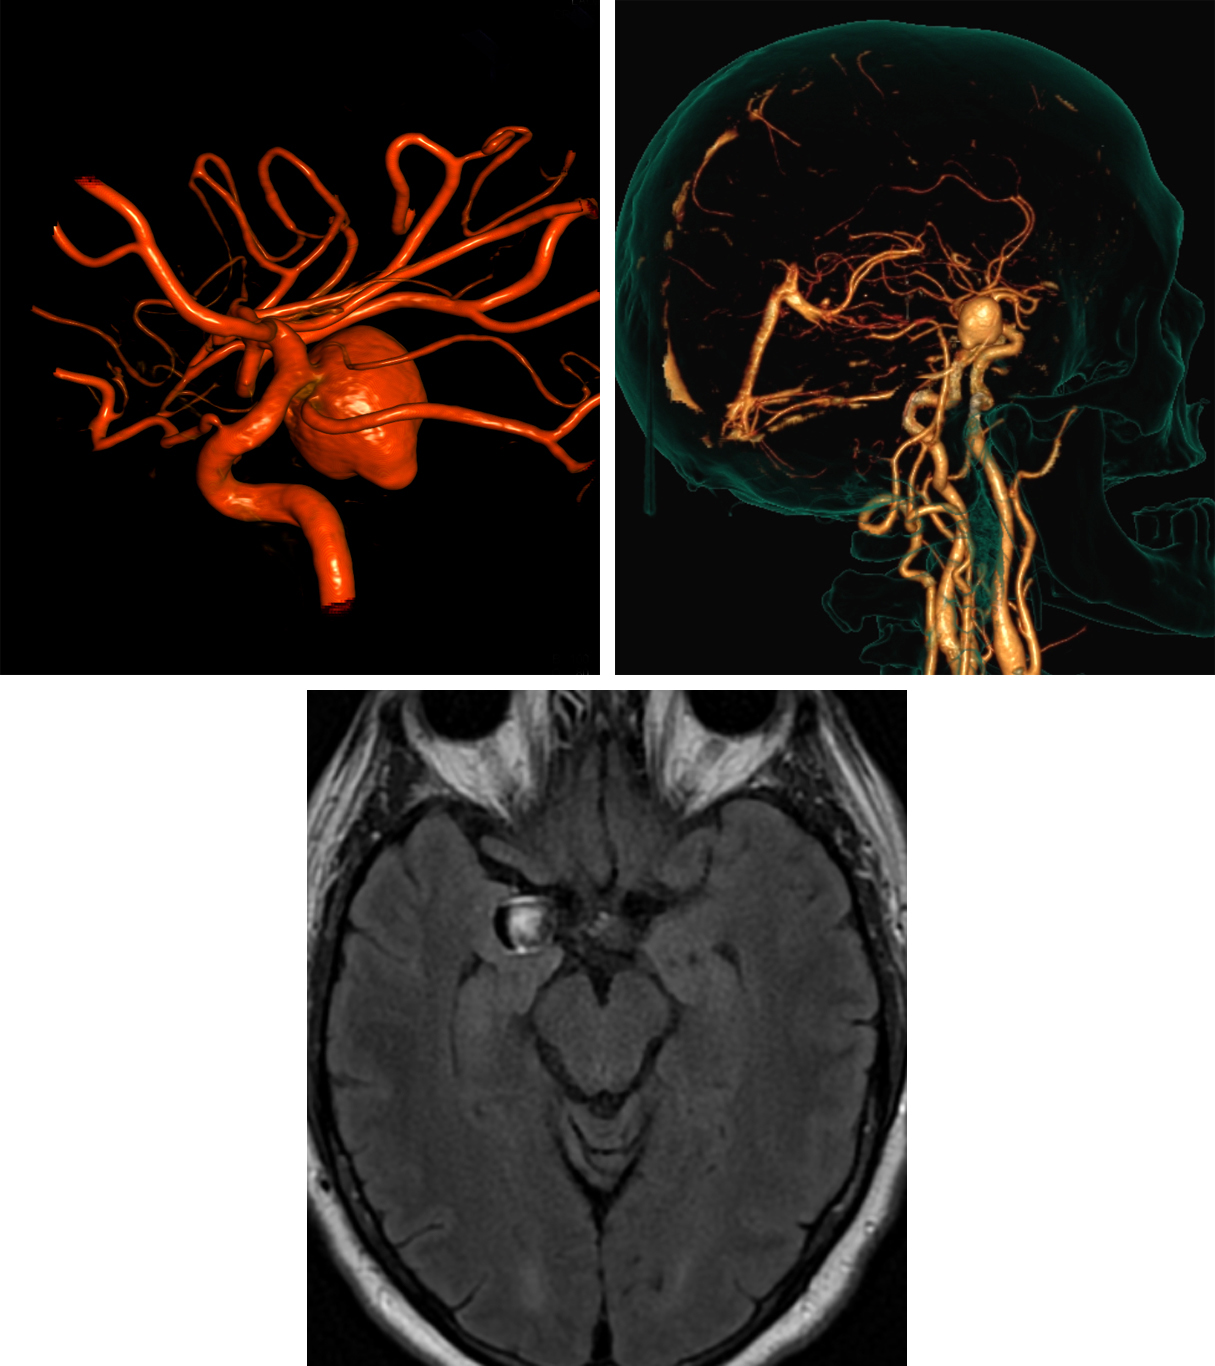 Figure 8: Posterior Communicating Artery Aneurysm – This P-Comm Aneurysm appears pedunculated but is clearly shown to incorporate the proximal (carotid) aspect of the posterior communicating artery on this 3-D reformat from DSA (top row left). A small bulbous outpouching from the aneurysm apex portends a higher risk for hemorrhage. CT Angiography images can be reformatted (top row right) to create images that may be helpful for anatomic localization for the neurosurgeon planning to clip an aneurysm. Axial FLAIR MR image (bottom row) demonstrates heterogeneity of this aneurysm due to flow-related signal changes.